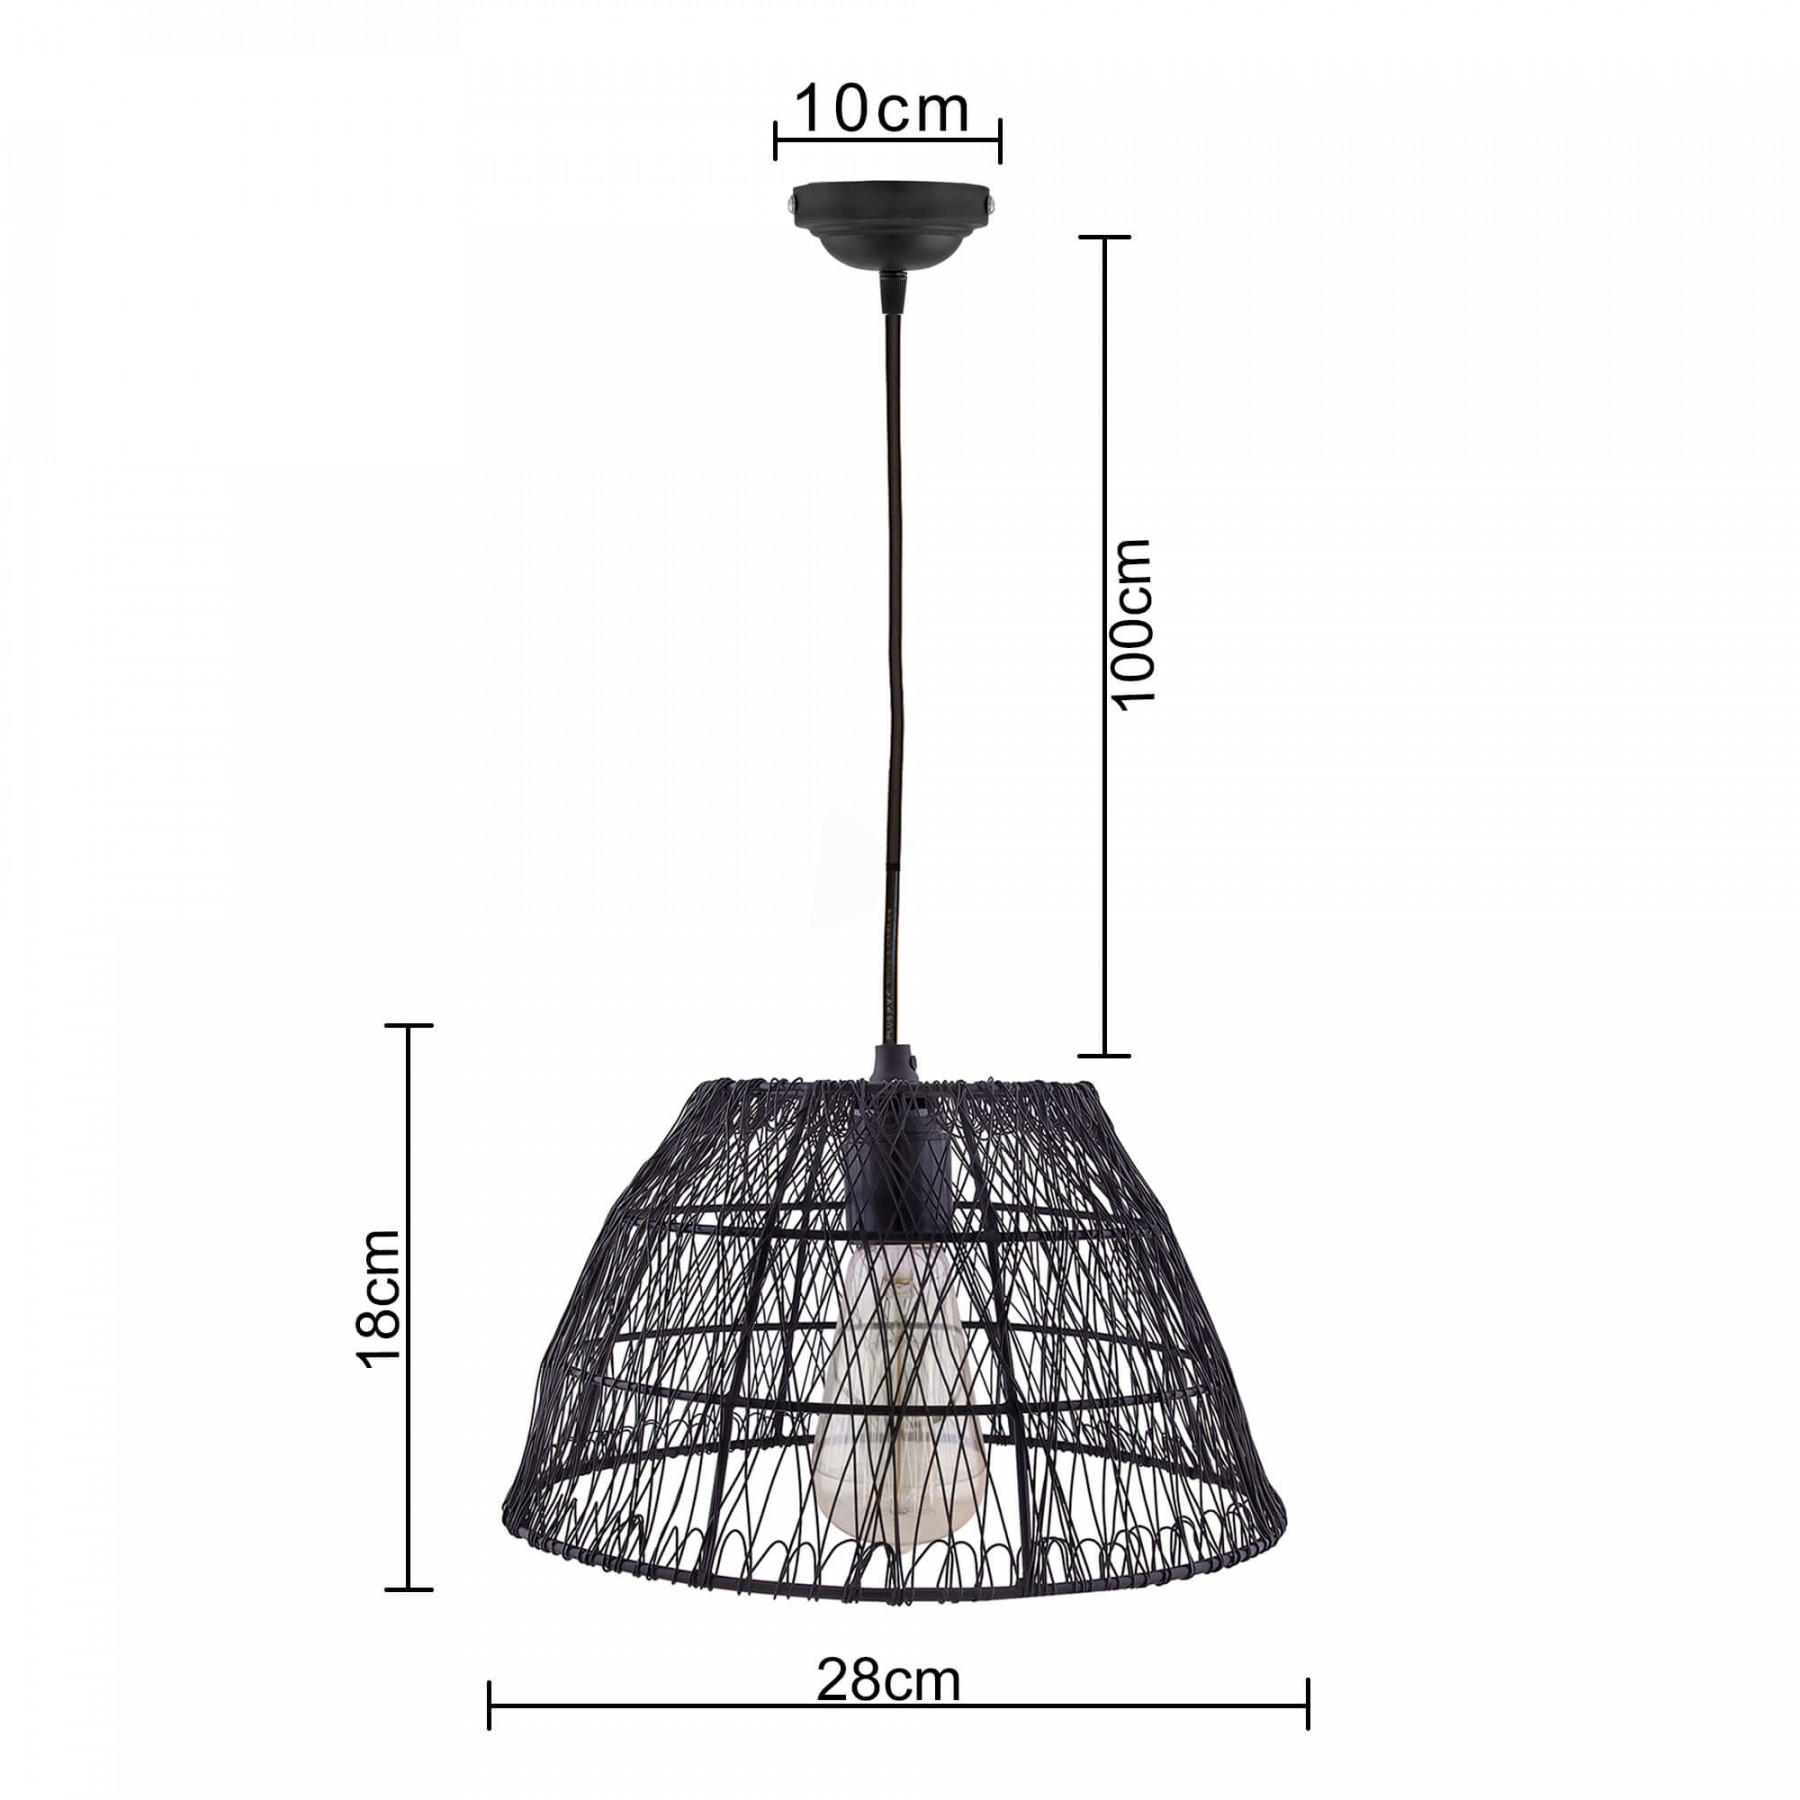 Metal Wire Mesh Lamp Shade Hanging Light Ceiling Pendant